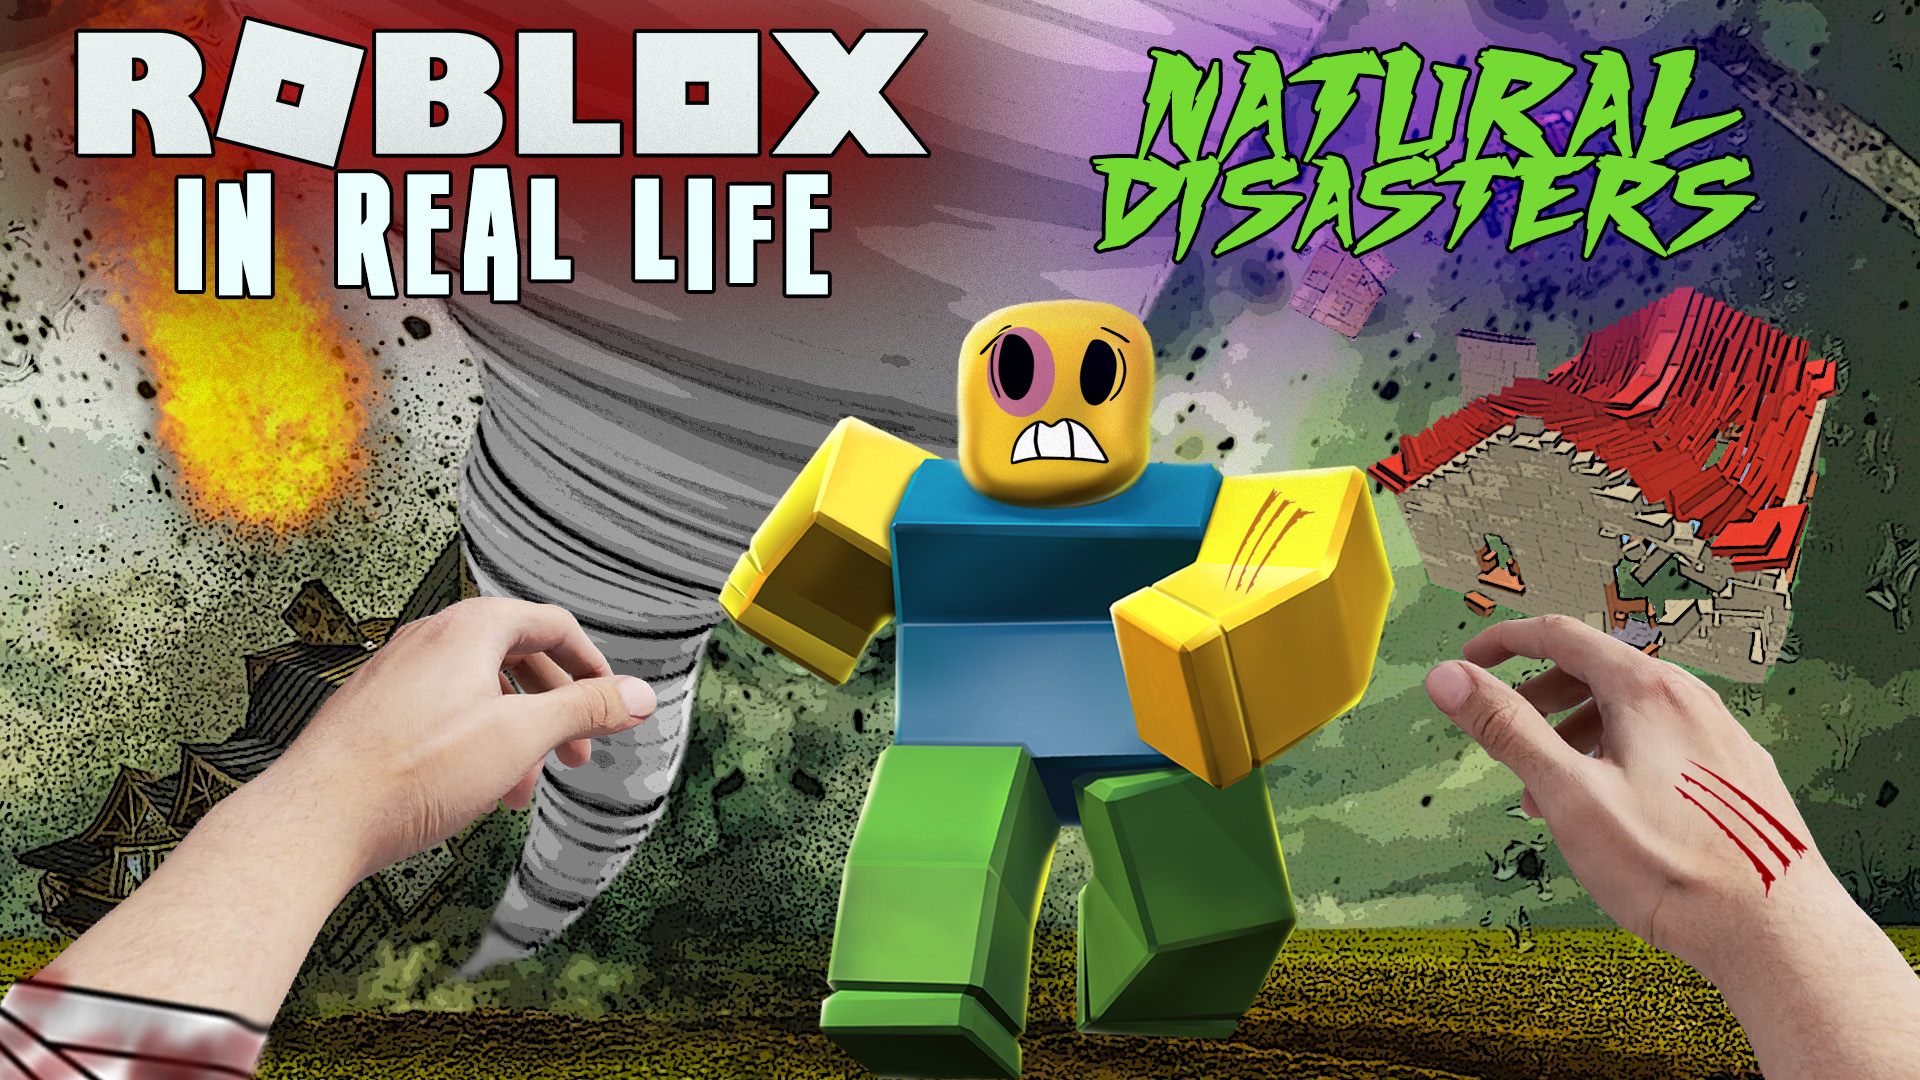 Tsunami Roblox Natural Disasters Watch Roblox In Real Life Natural Disasters Prime Video